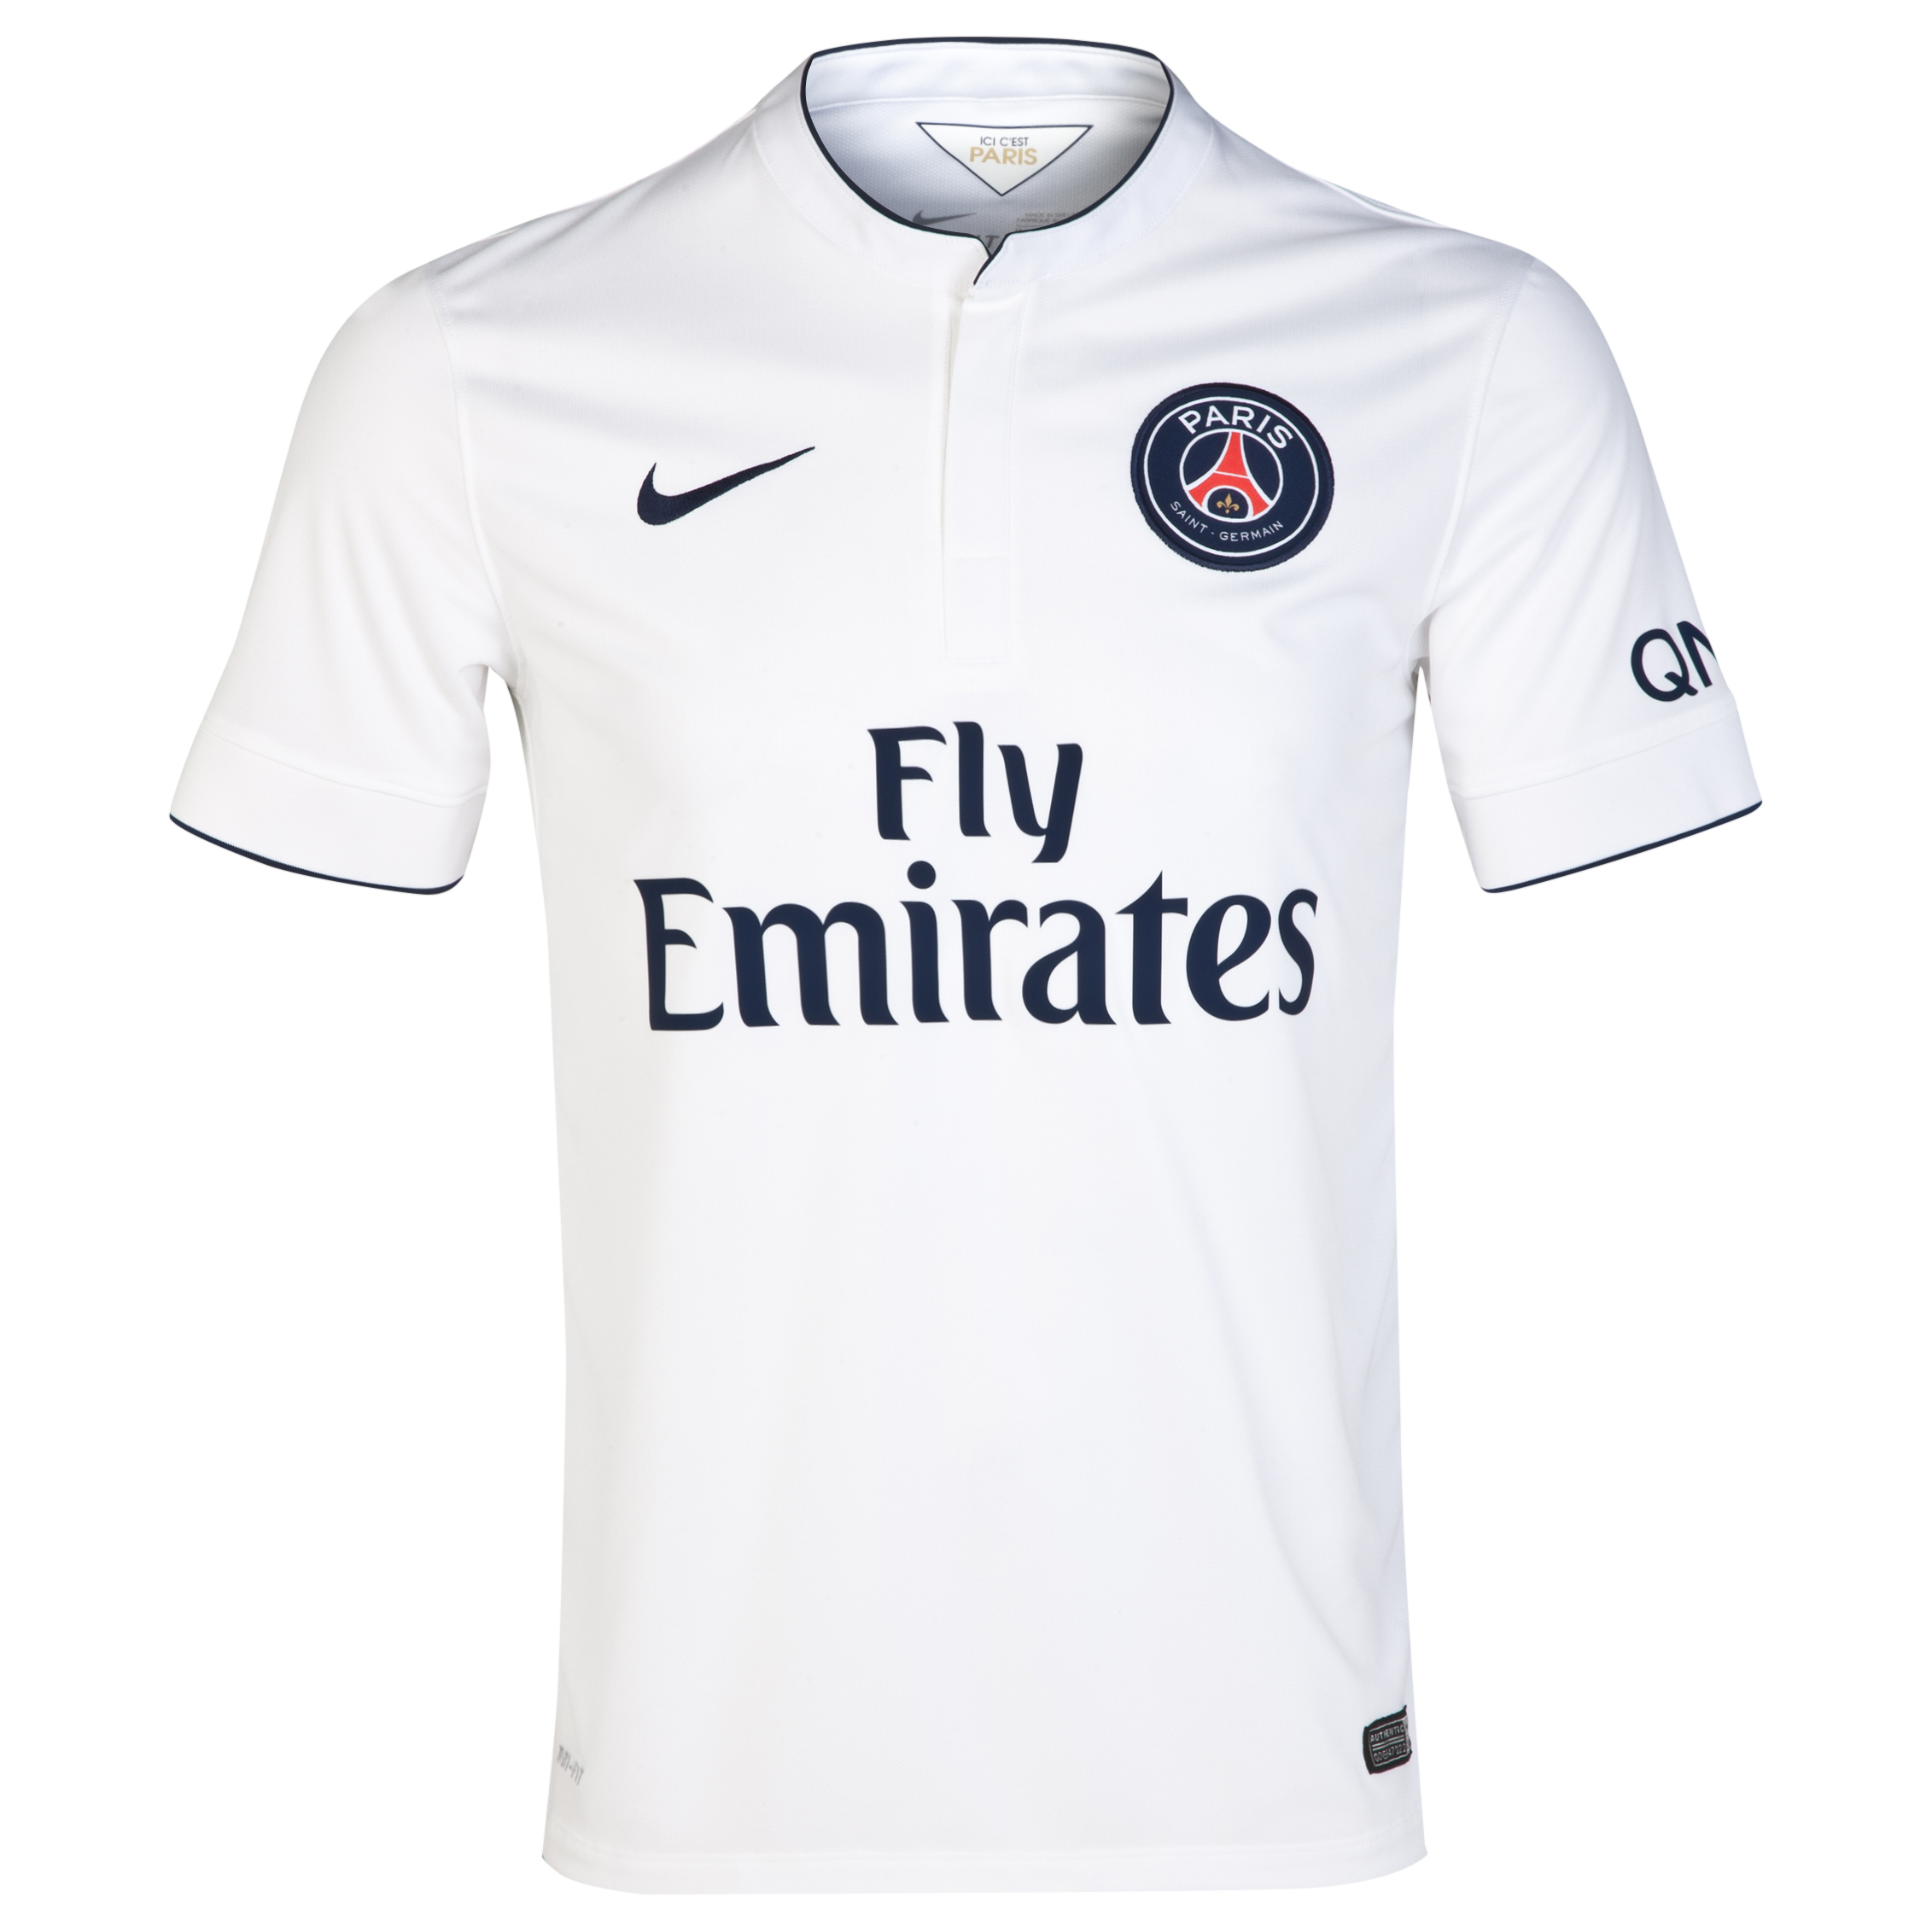 Paris Saint-Germain Away Shirt 2014/15 White